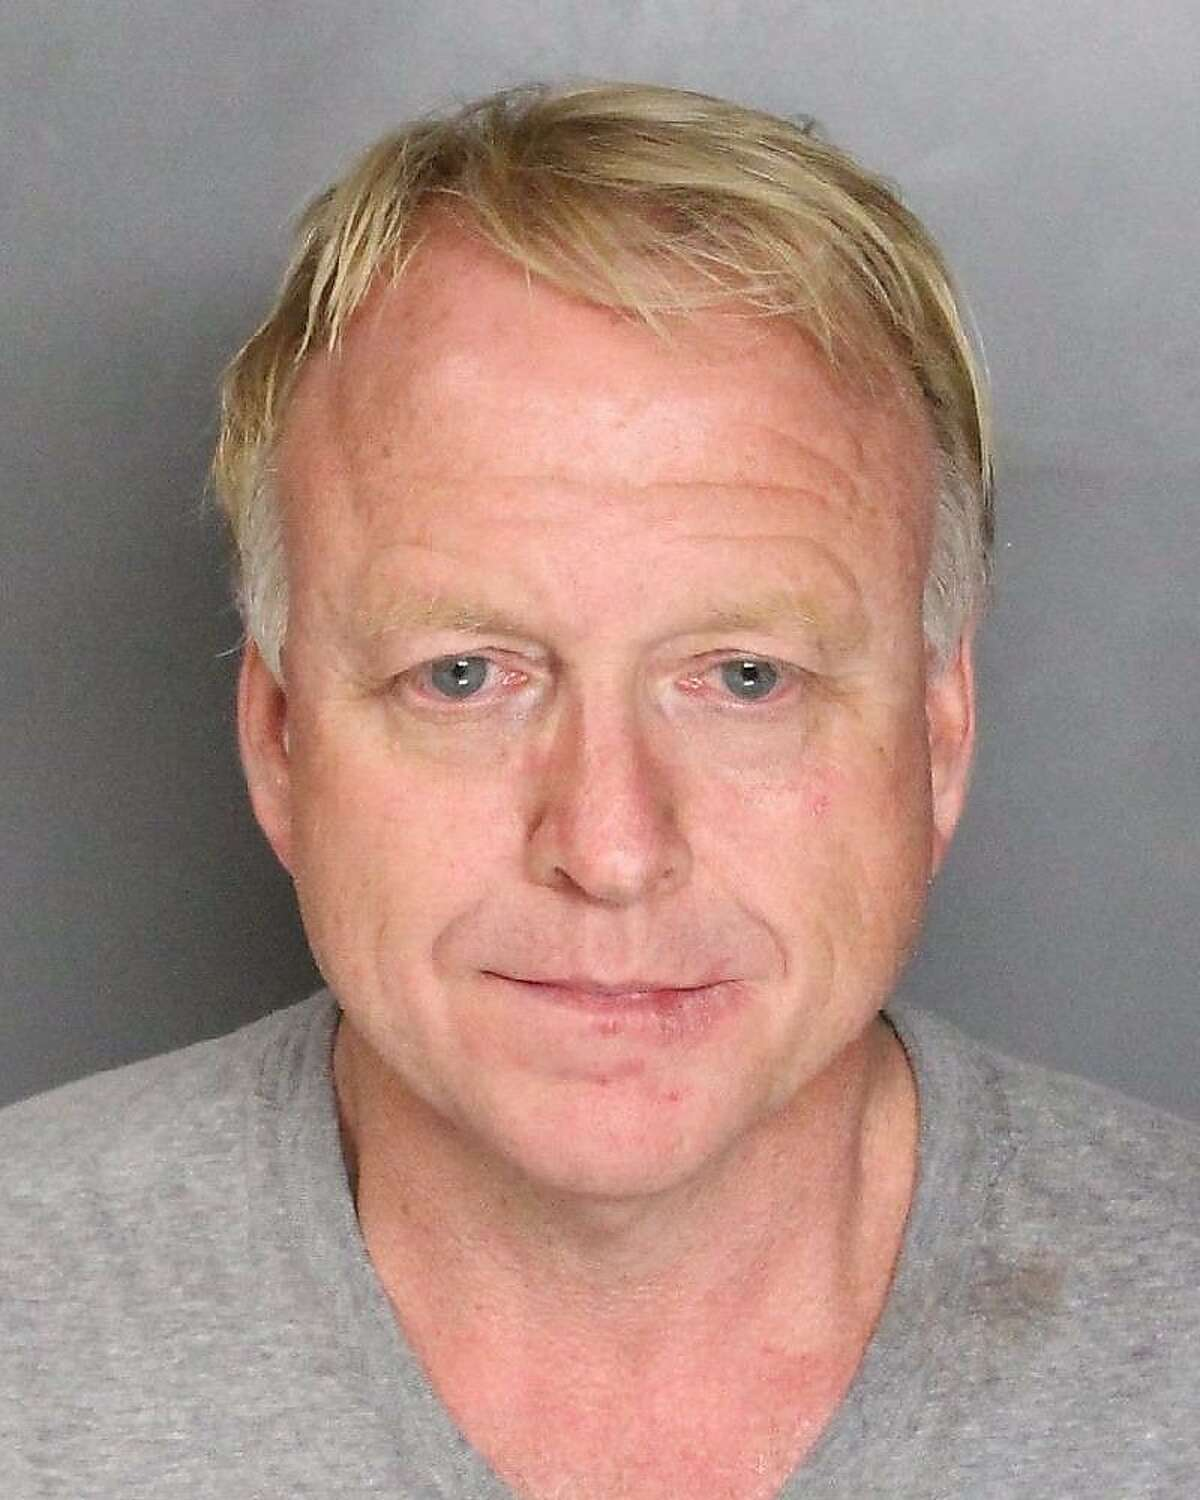 Thomas Price, 54, was arrested at a Rancho Cordova hotel on Friday, Oct. 3, 2014, after deputies said they found him in a room there with an unresponsive woman and large quantities of heroin, cocaine and methamphetamine. Price is the principal of Branson High School in Ross.